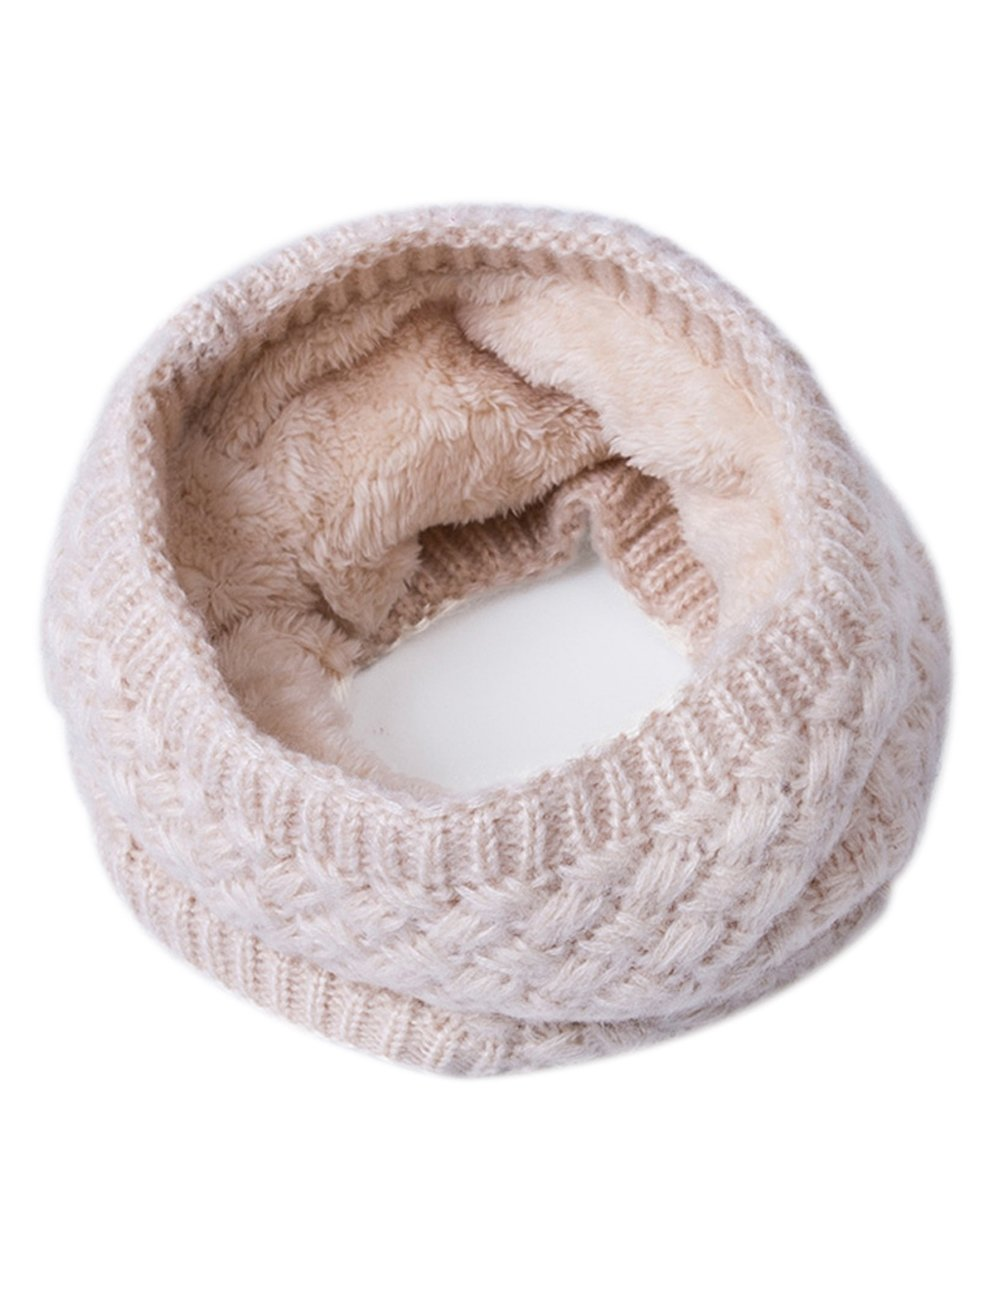 EVRFELAN Infinity Scarf Winter Women Circle Loop Scarves Warm Kids Neck Warmer Chunky Knit Soft Thick Fashion Ladies Accessories Ribbed Girls Men Boy Collar (Beige)